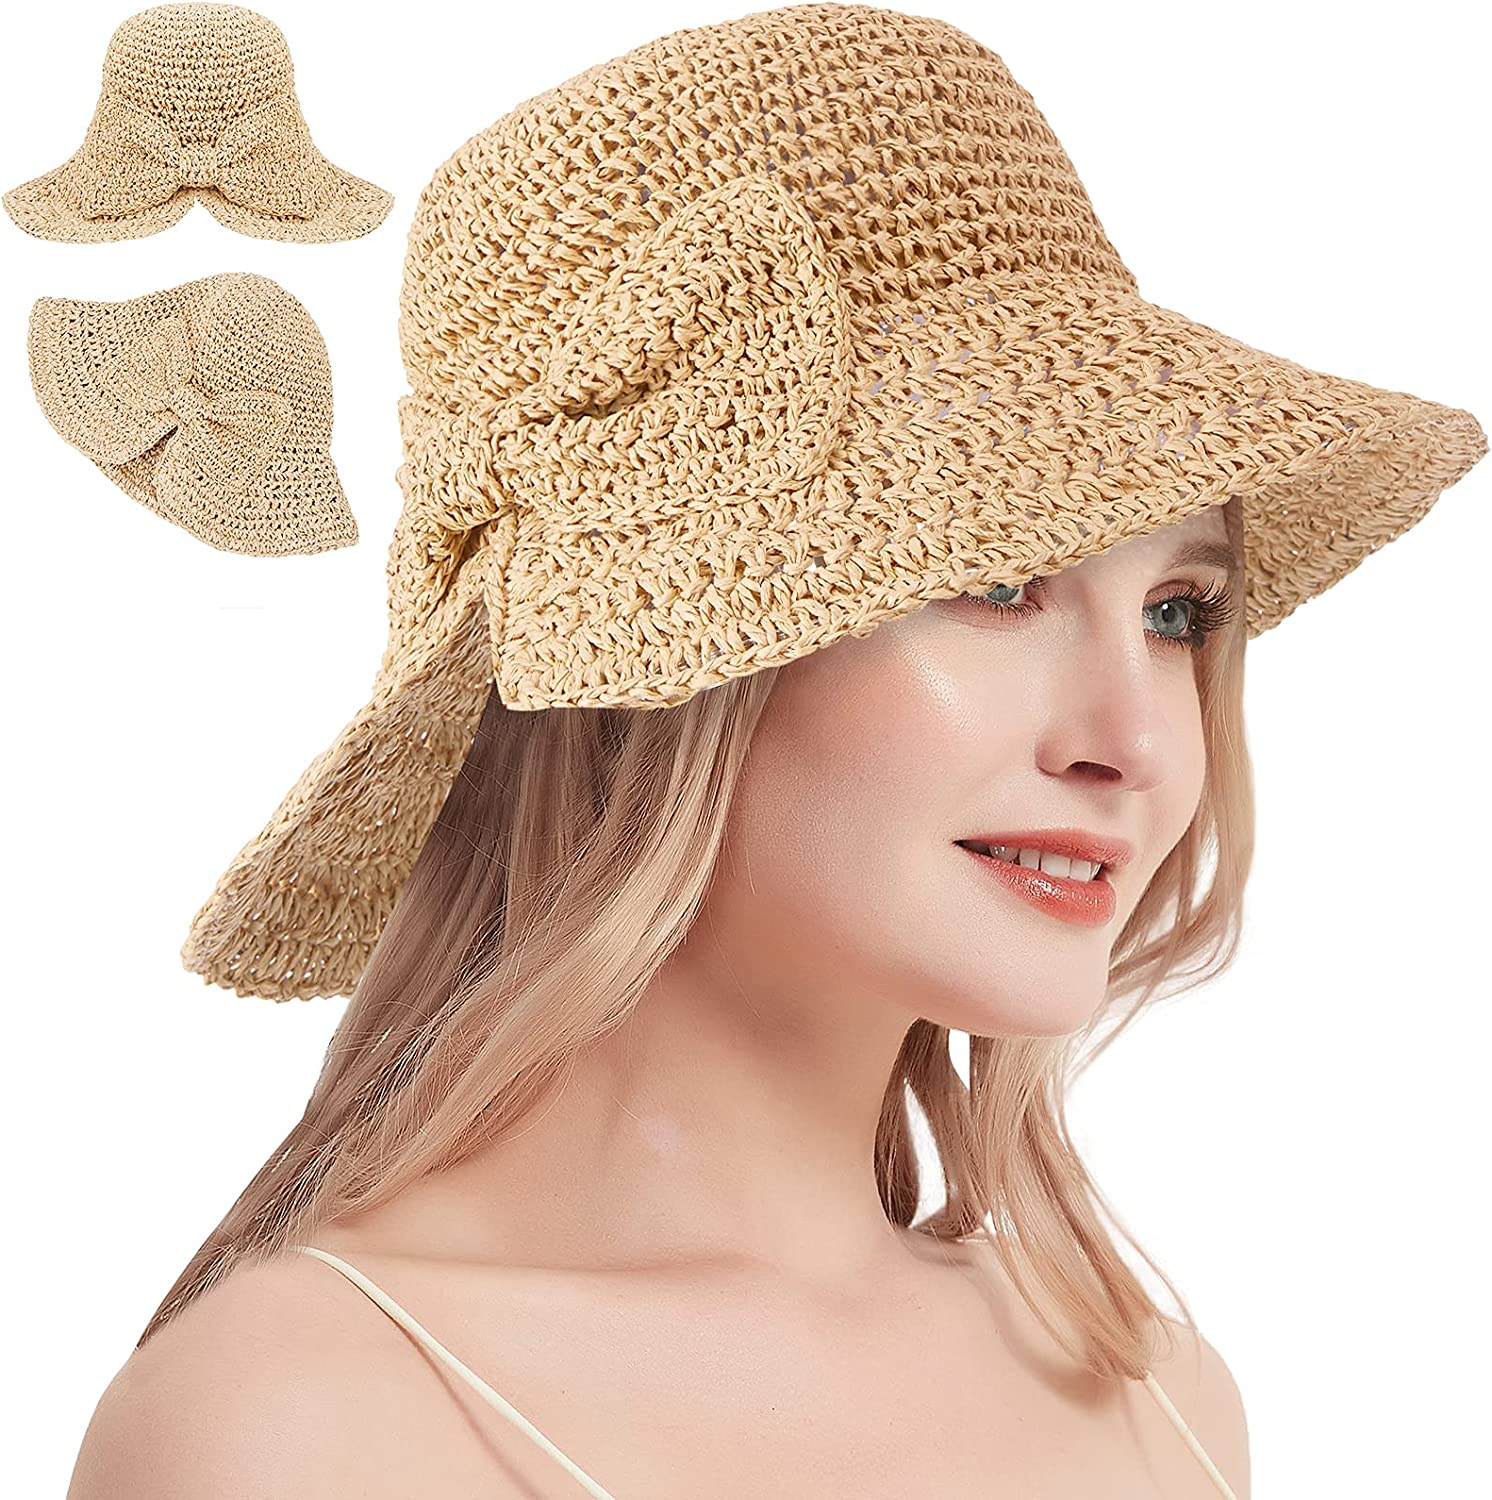 Floppy Beach Straw Sun Hat for Women, UPF UV Protection Large Wide Brim Bowknot Summer Hat for Vacation, Fishing, Travel